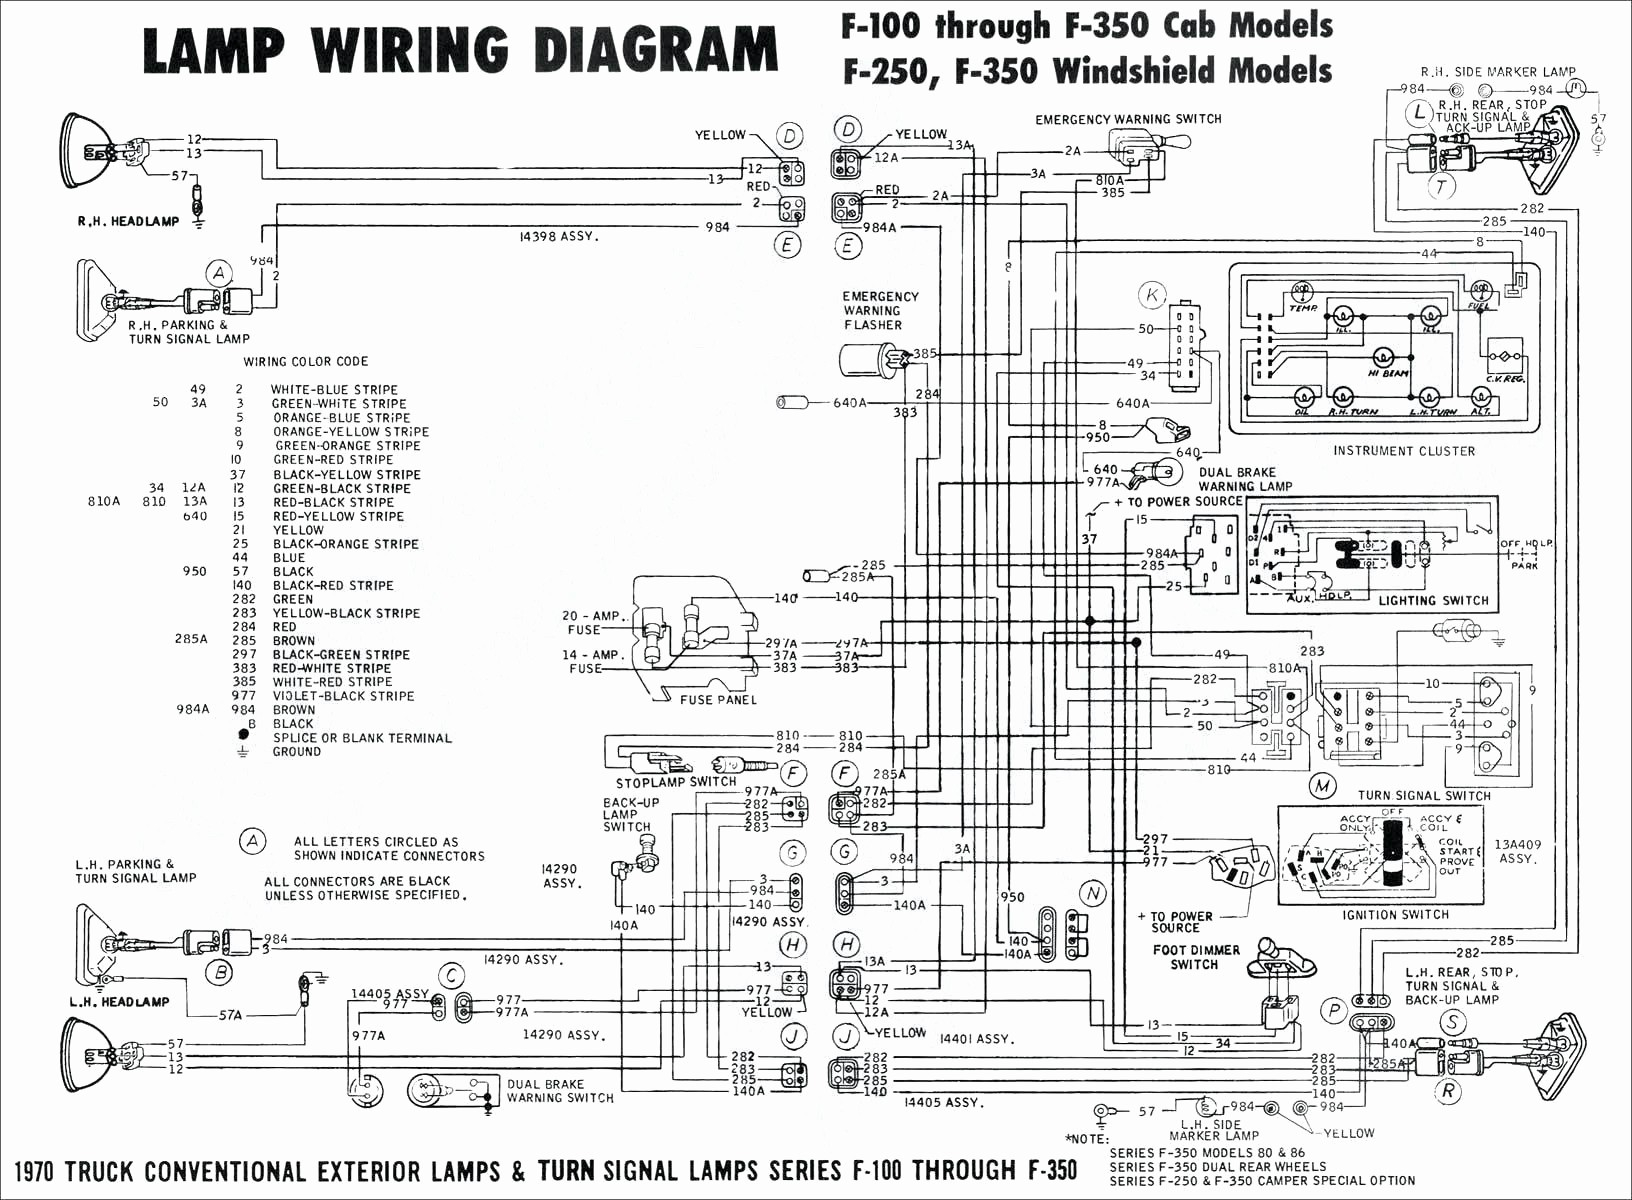 hight resolution of wiring diagrams pic2flycom outdoorelectricalwiringdiagrams 2009 silverado radio wiring diagram wwwpic2flycom 2009chevy wiring diagrams pic2flycom